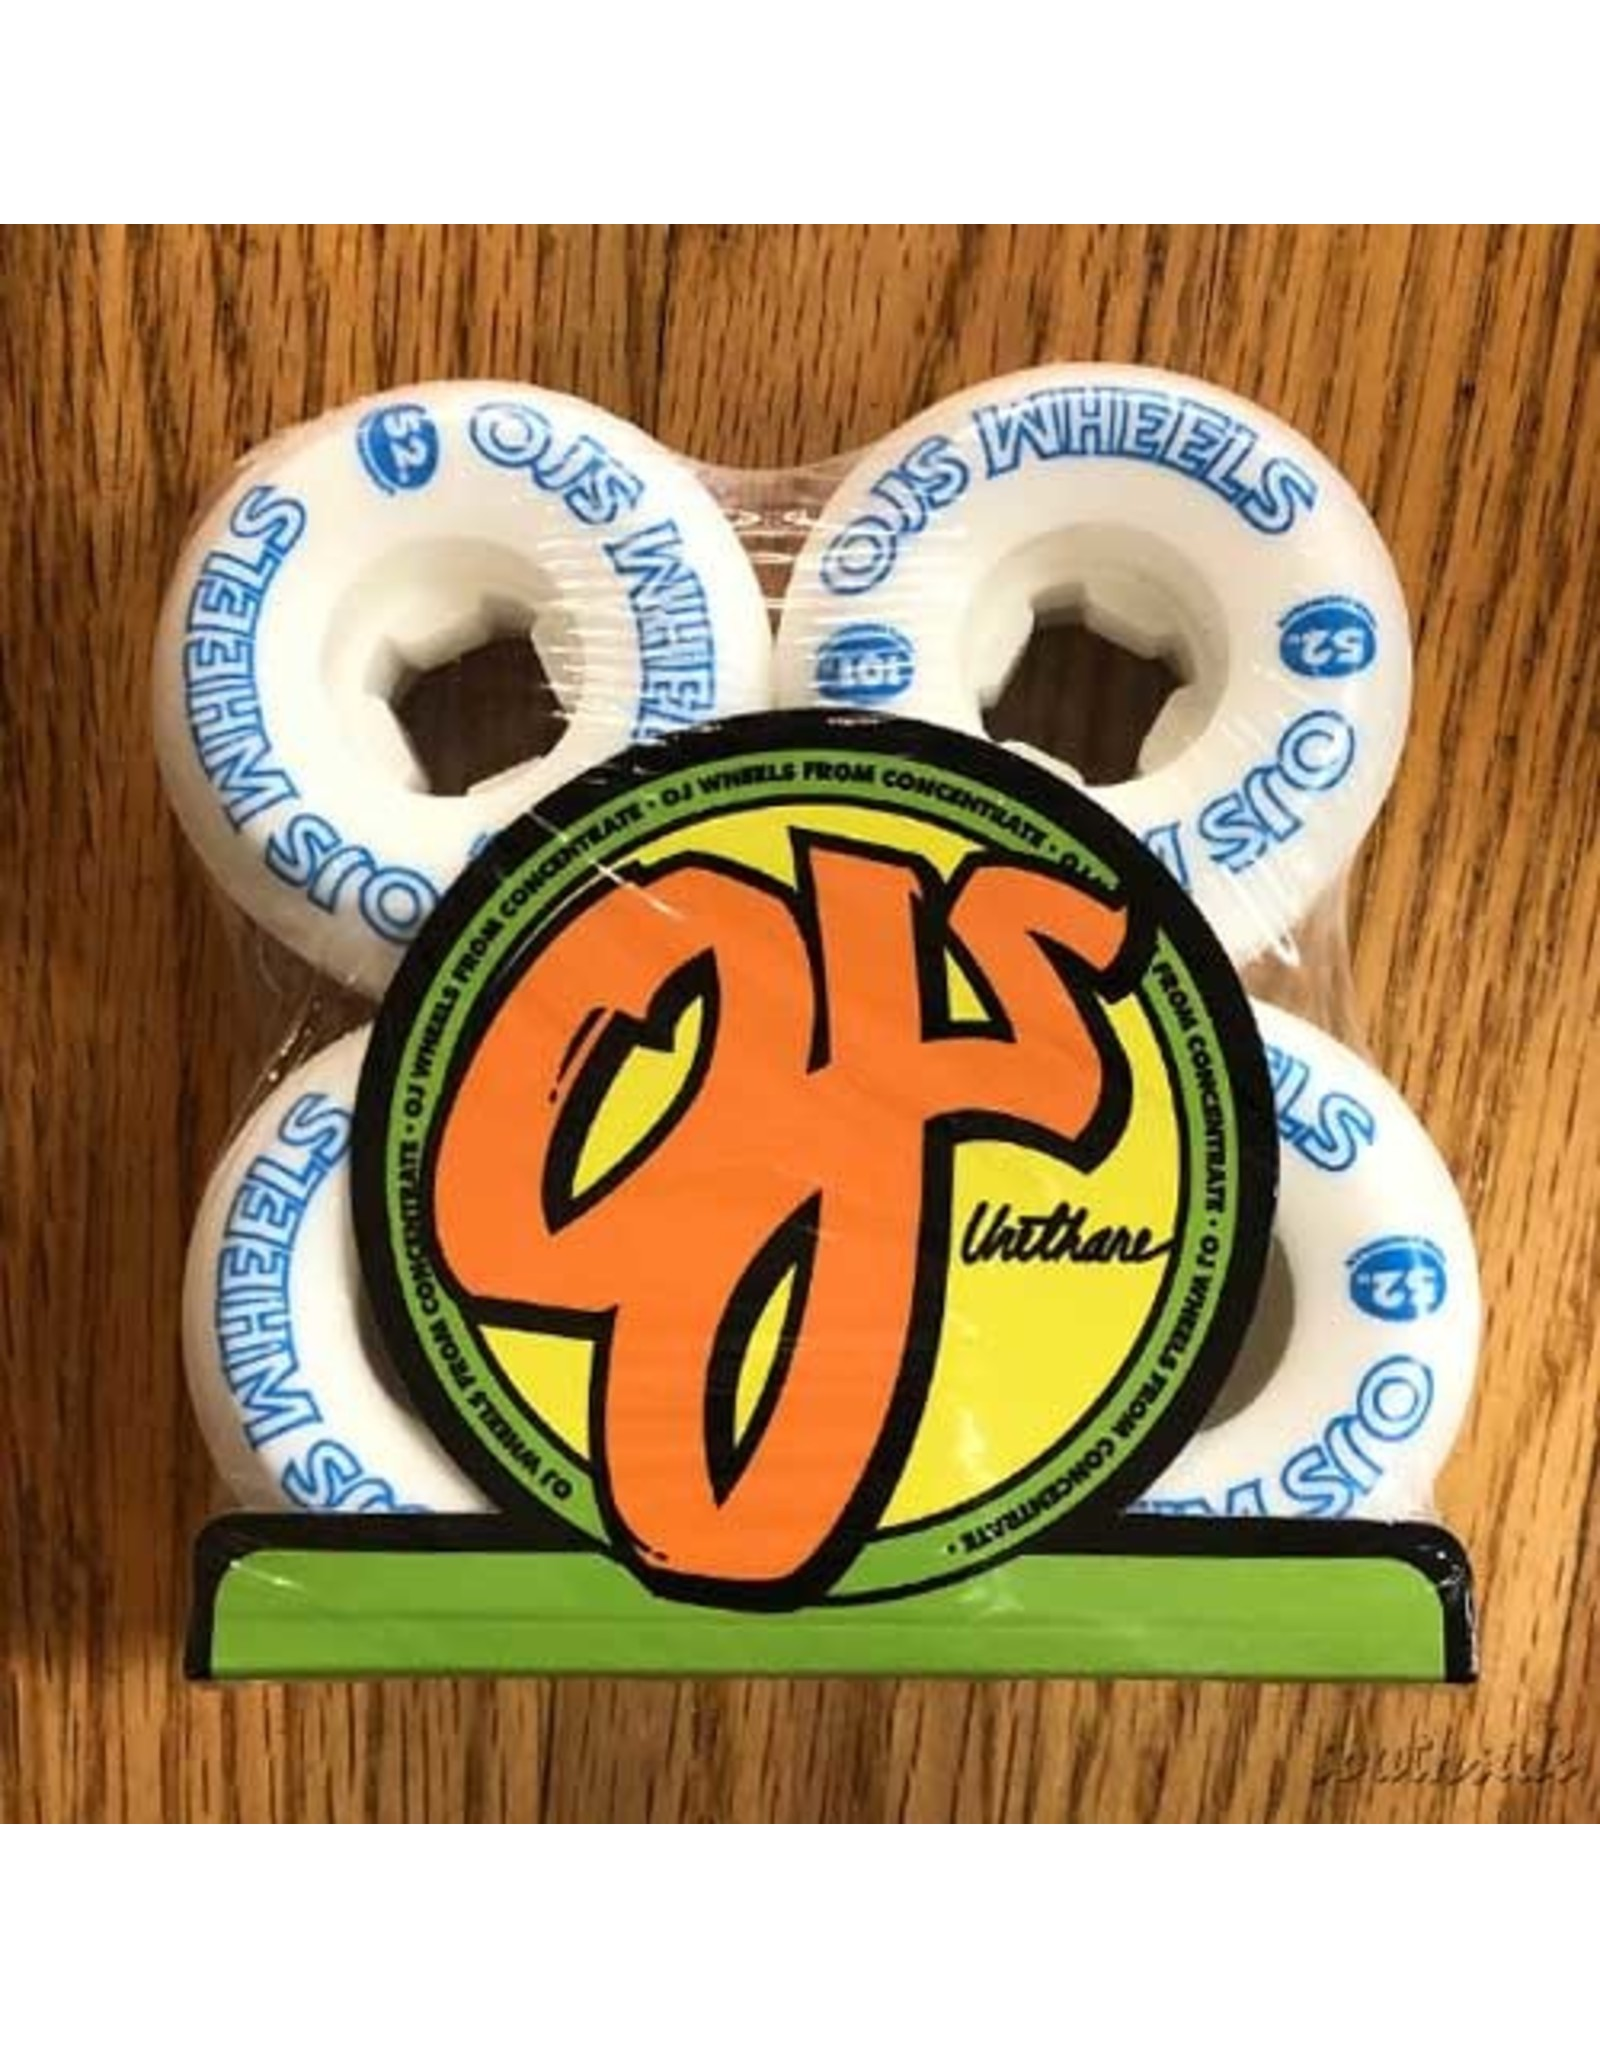 OJ Wheels from Concentrate Hardline 52mm101A